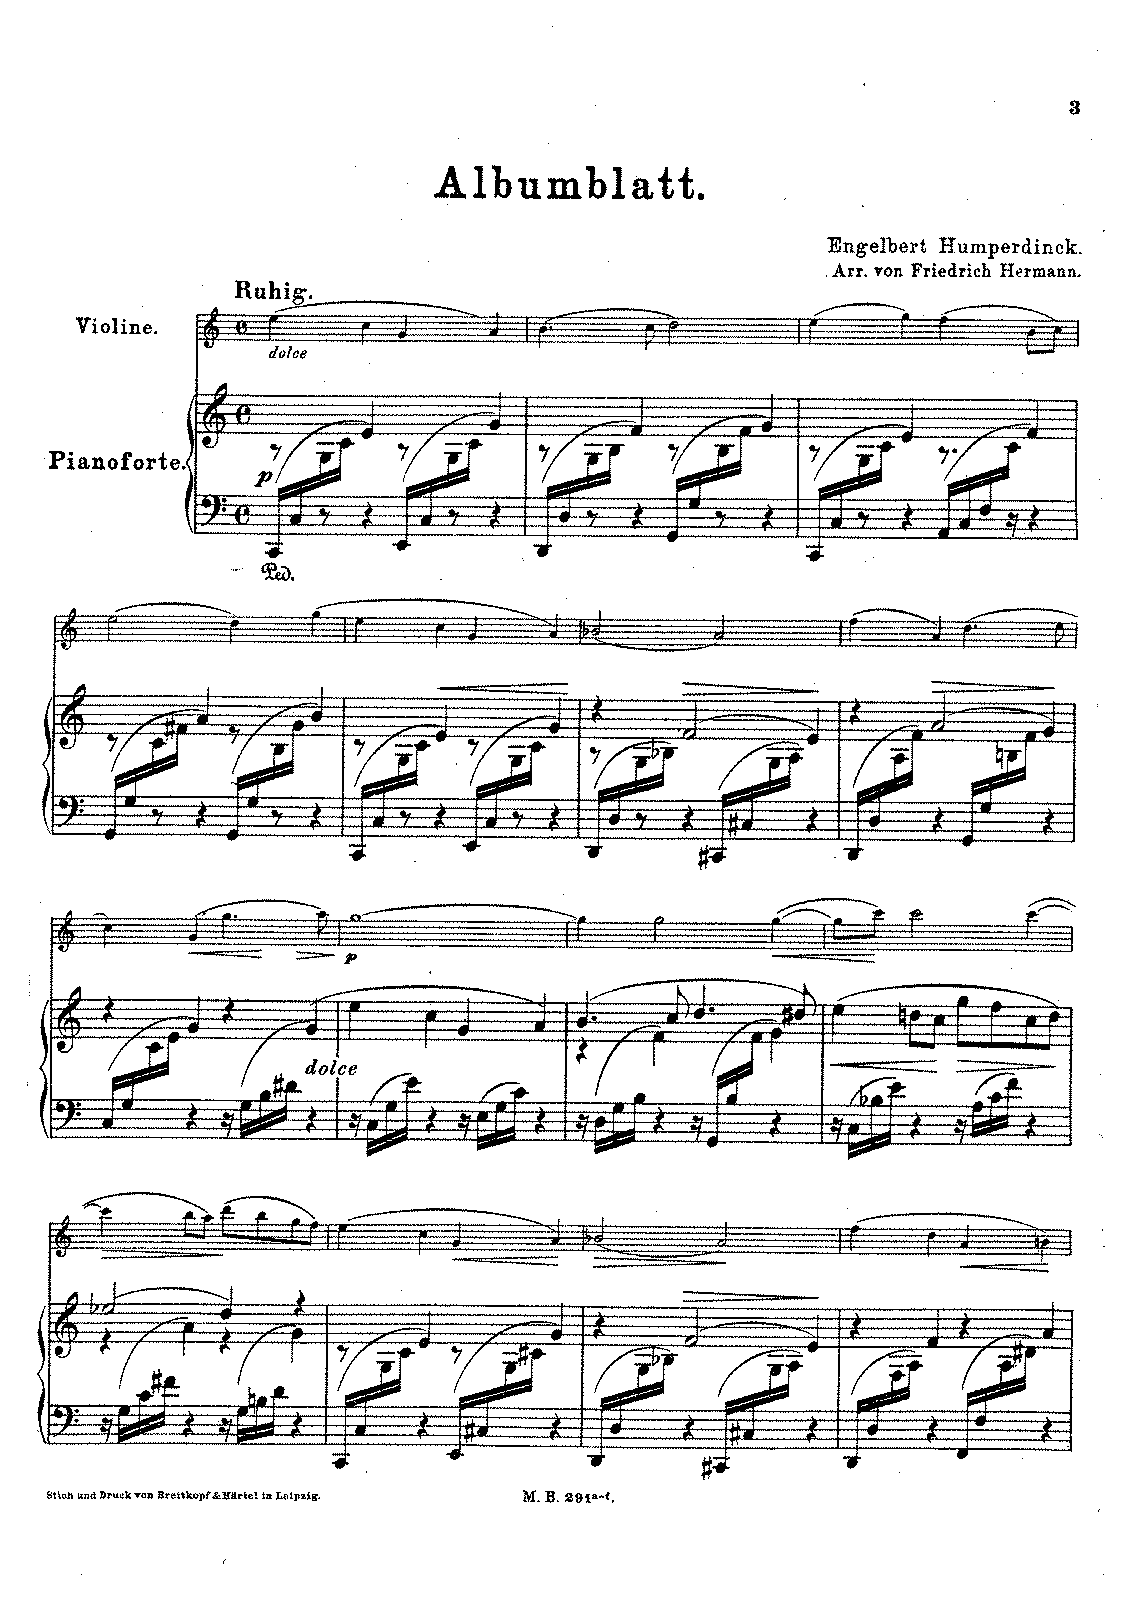 PMLP108668-Humperdinck Albumblatt for Violin and Piano BH.pdf